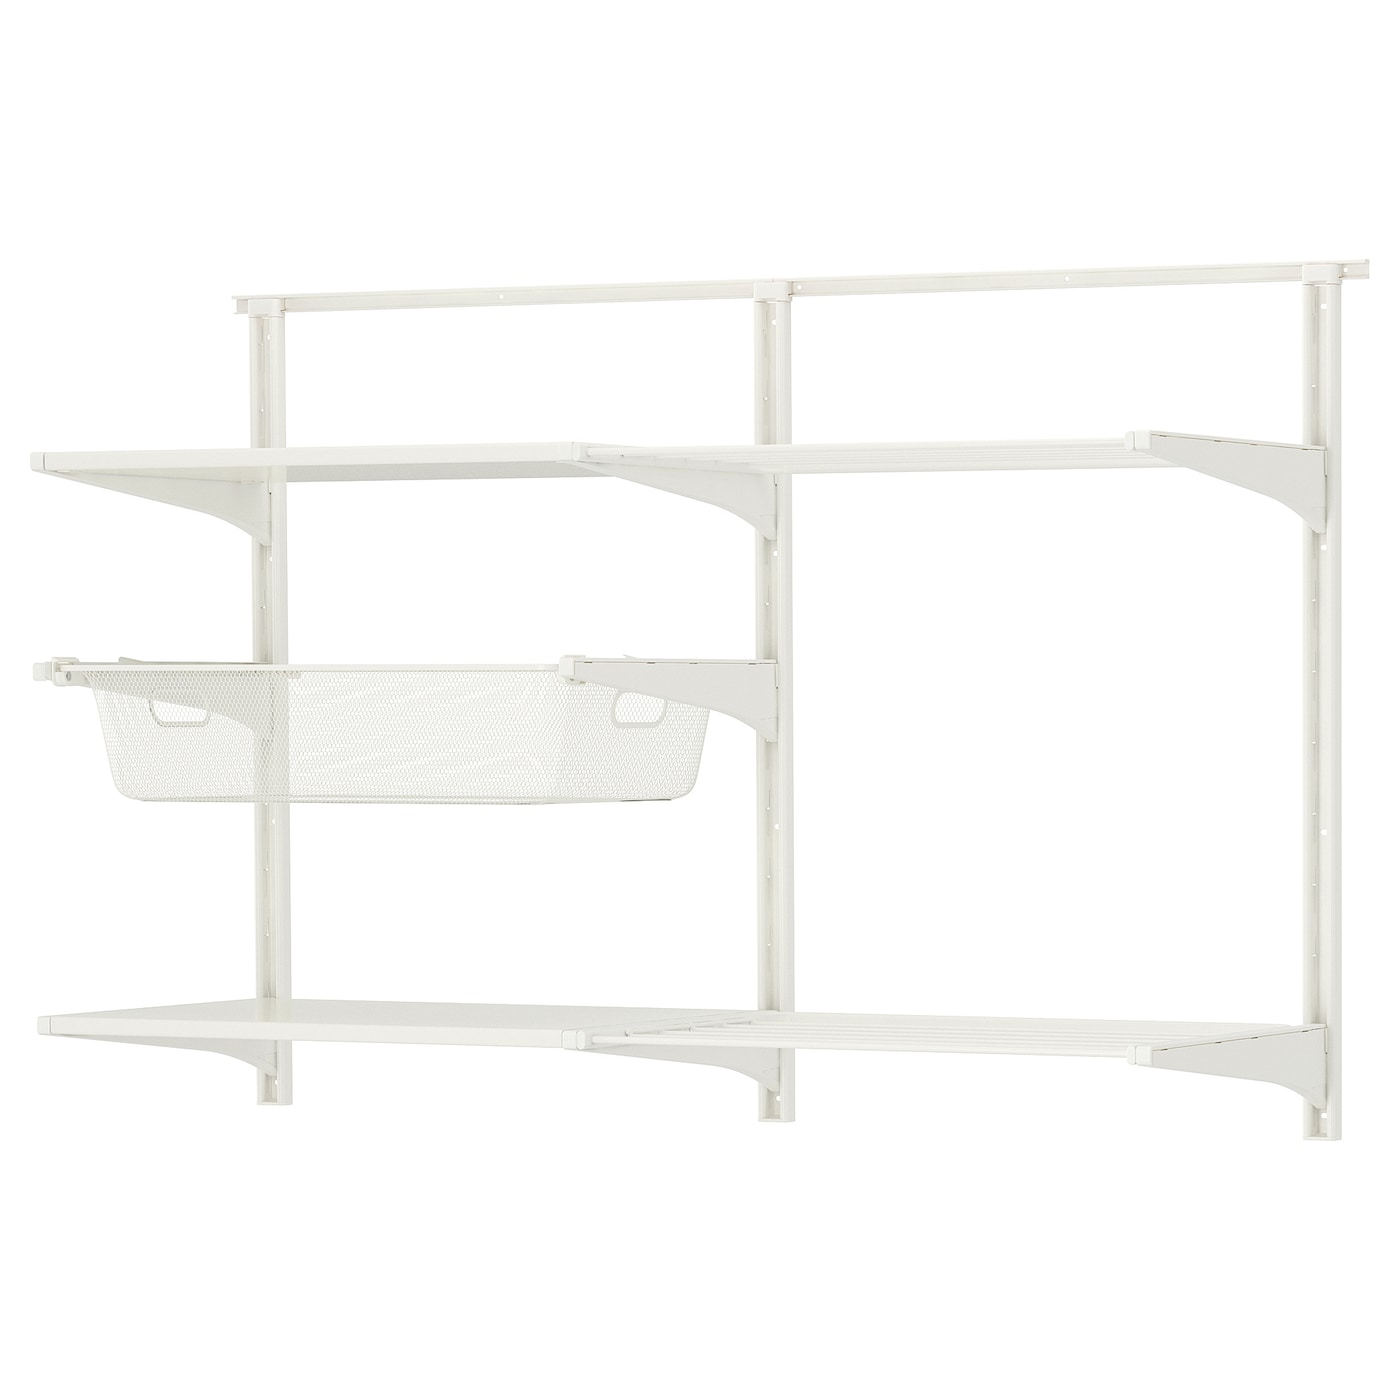 IKEA ALGOT wall upright/shelves/drying rack